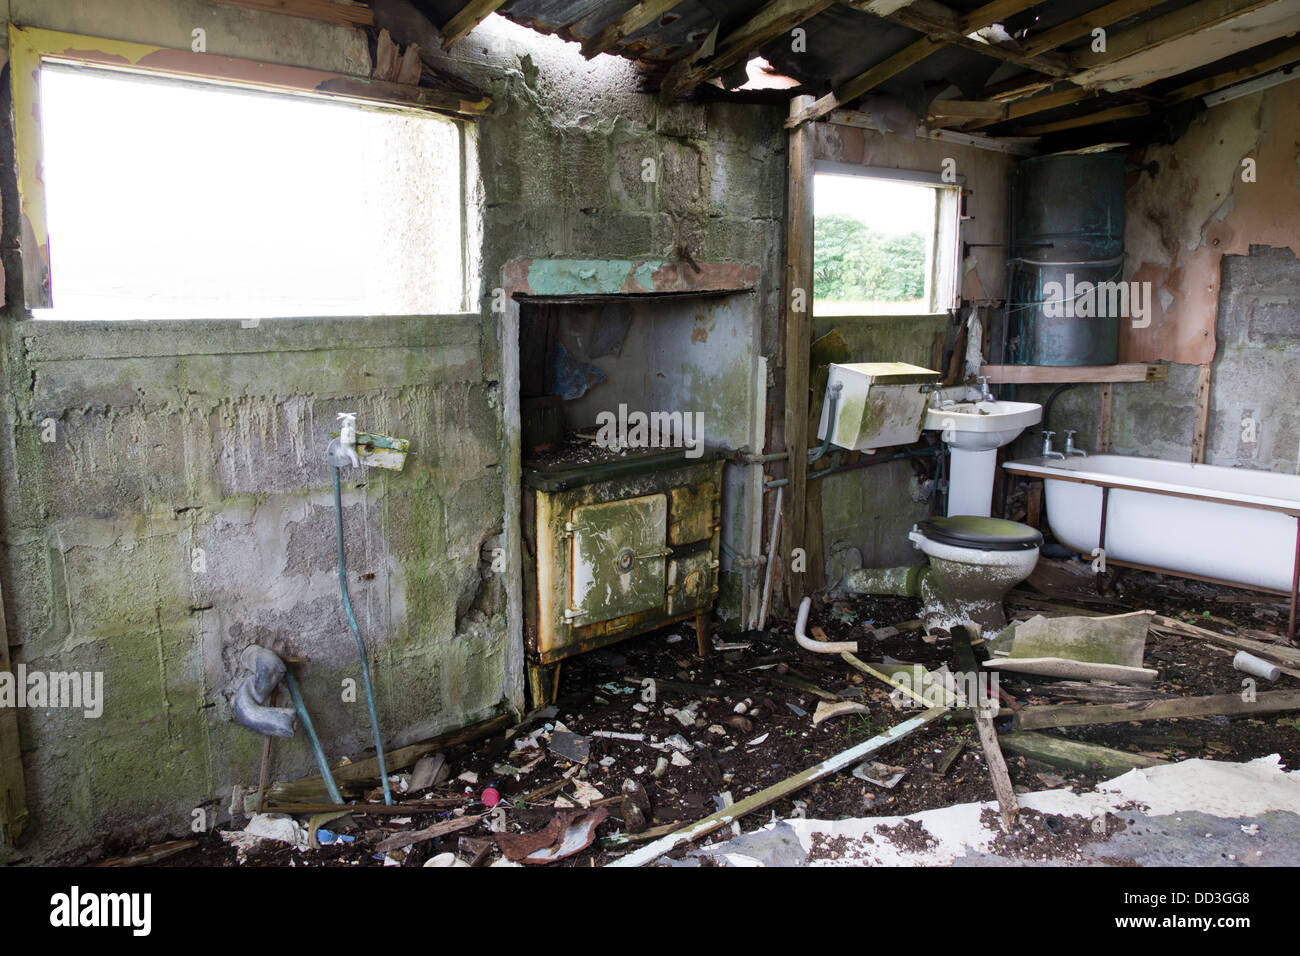 AN old Stove and bathroom suite in a derelict croft house Isle Of Lewis UK. - Stock Image